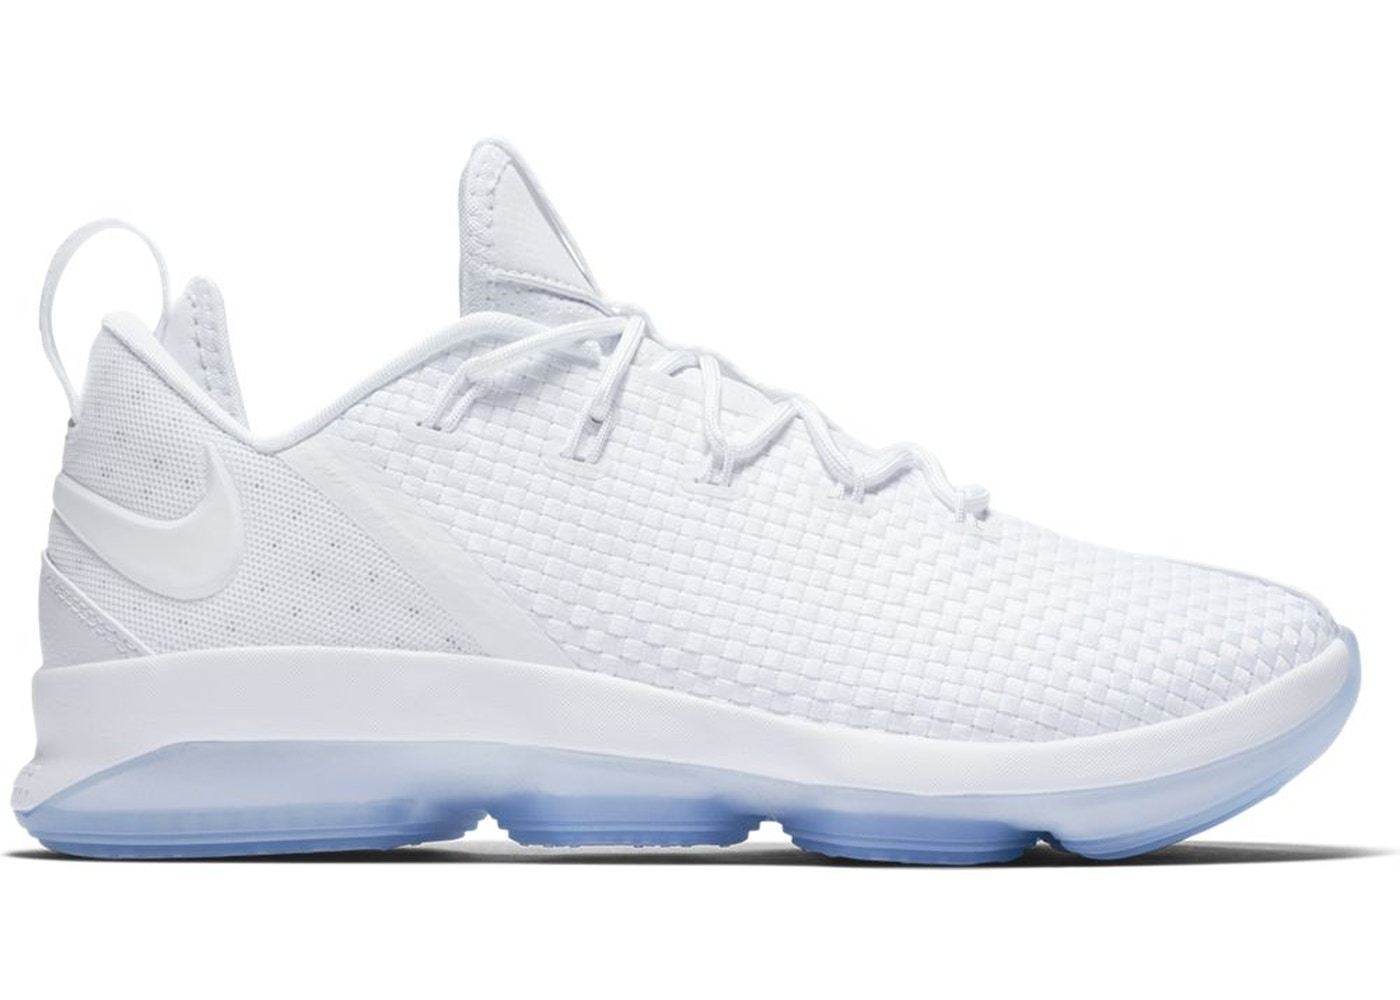 c9b6e95bf8e LeBron 14 Low White Ice - 878636-101